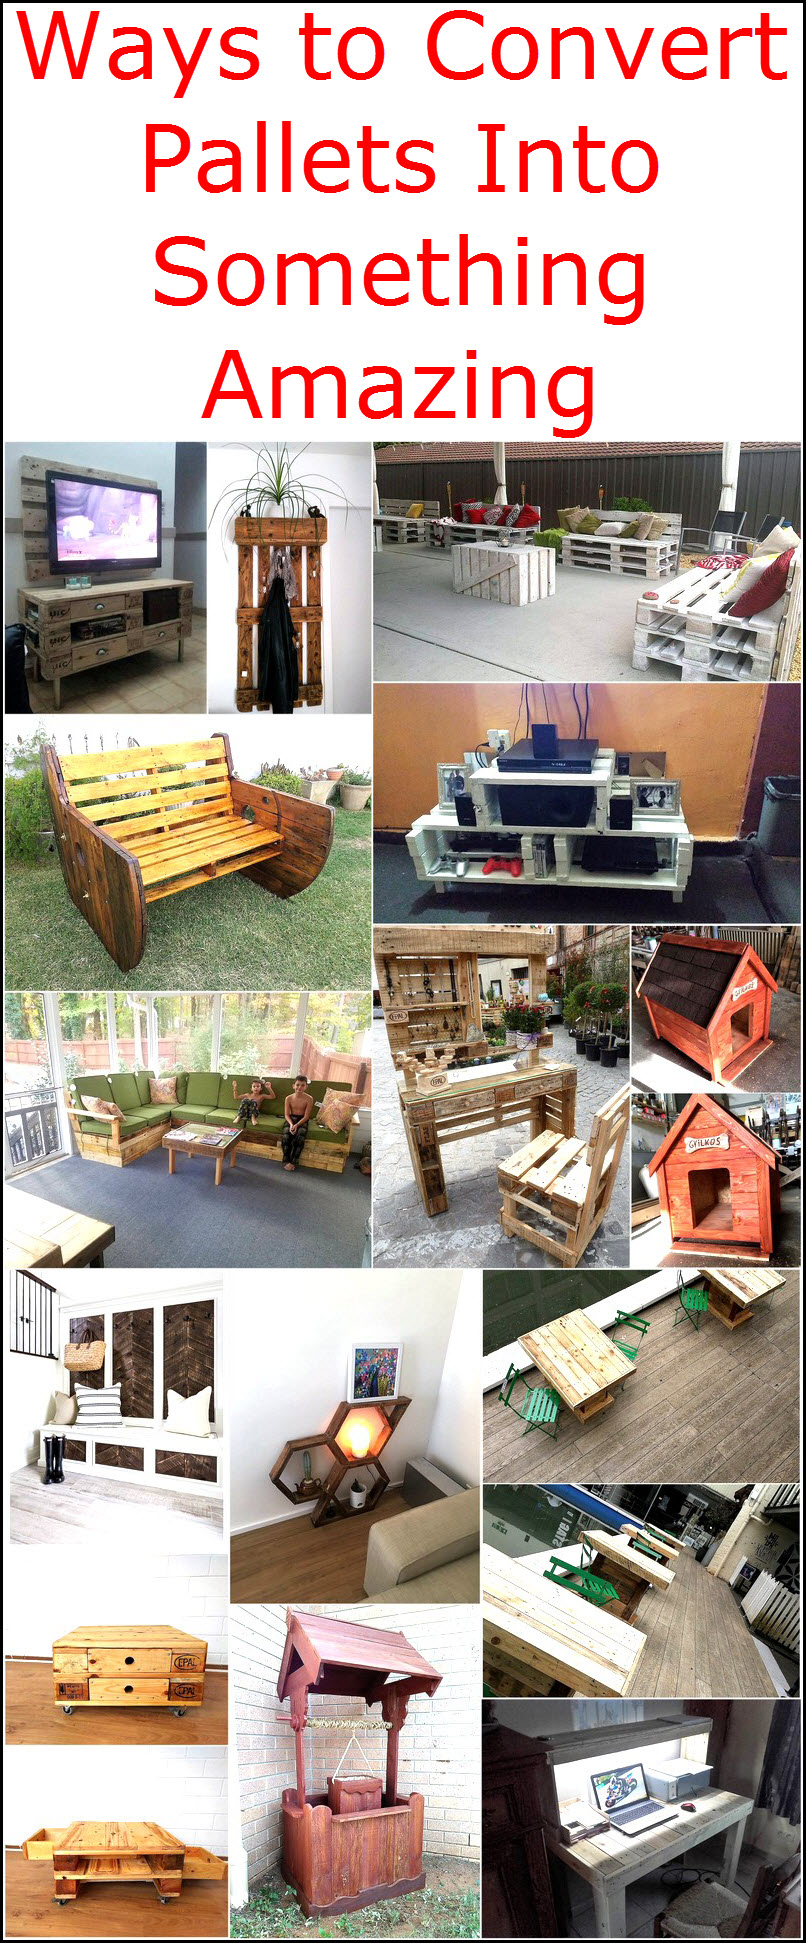 ways-to-convert-pallets-into-something-amazing